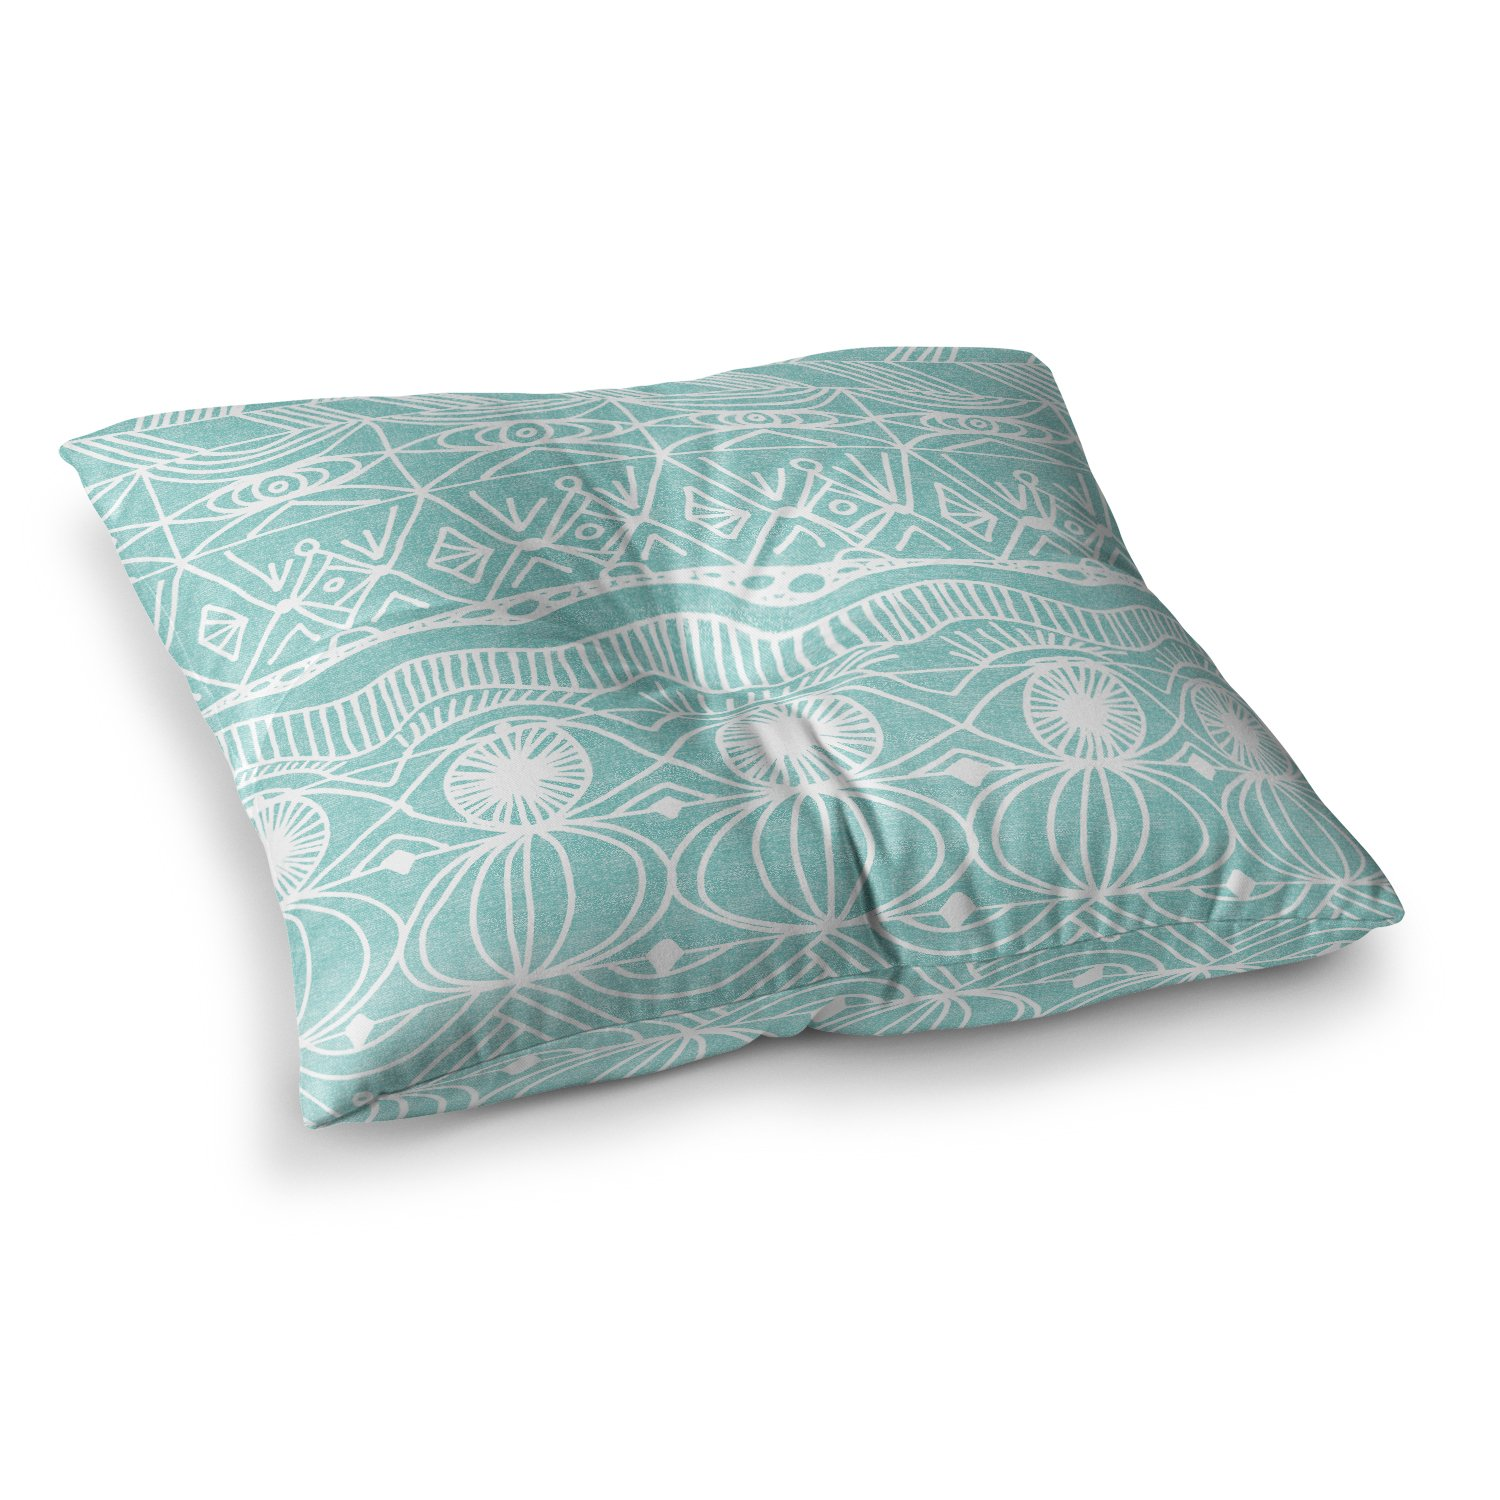 KESS InHouse Catherine Holcombe Beach Blanket Bingo Square Floor Pillow x 23'' by Kess InHouse